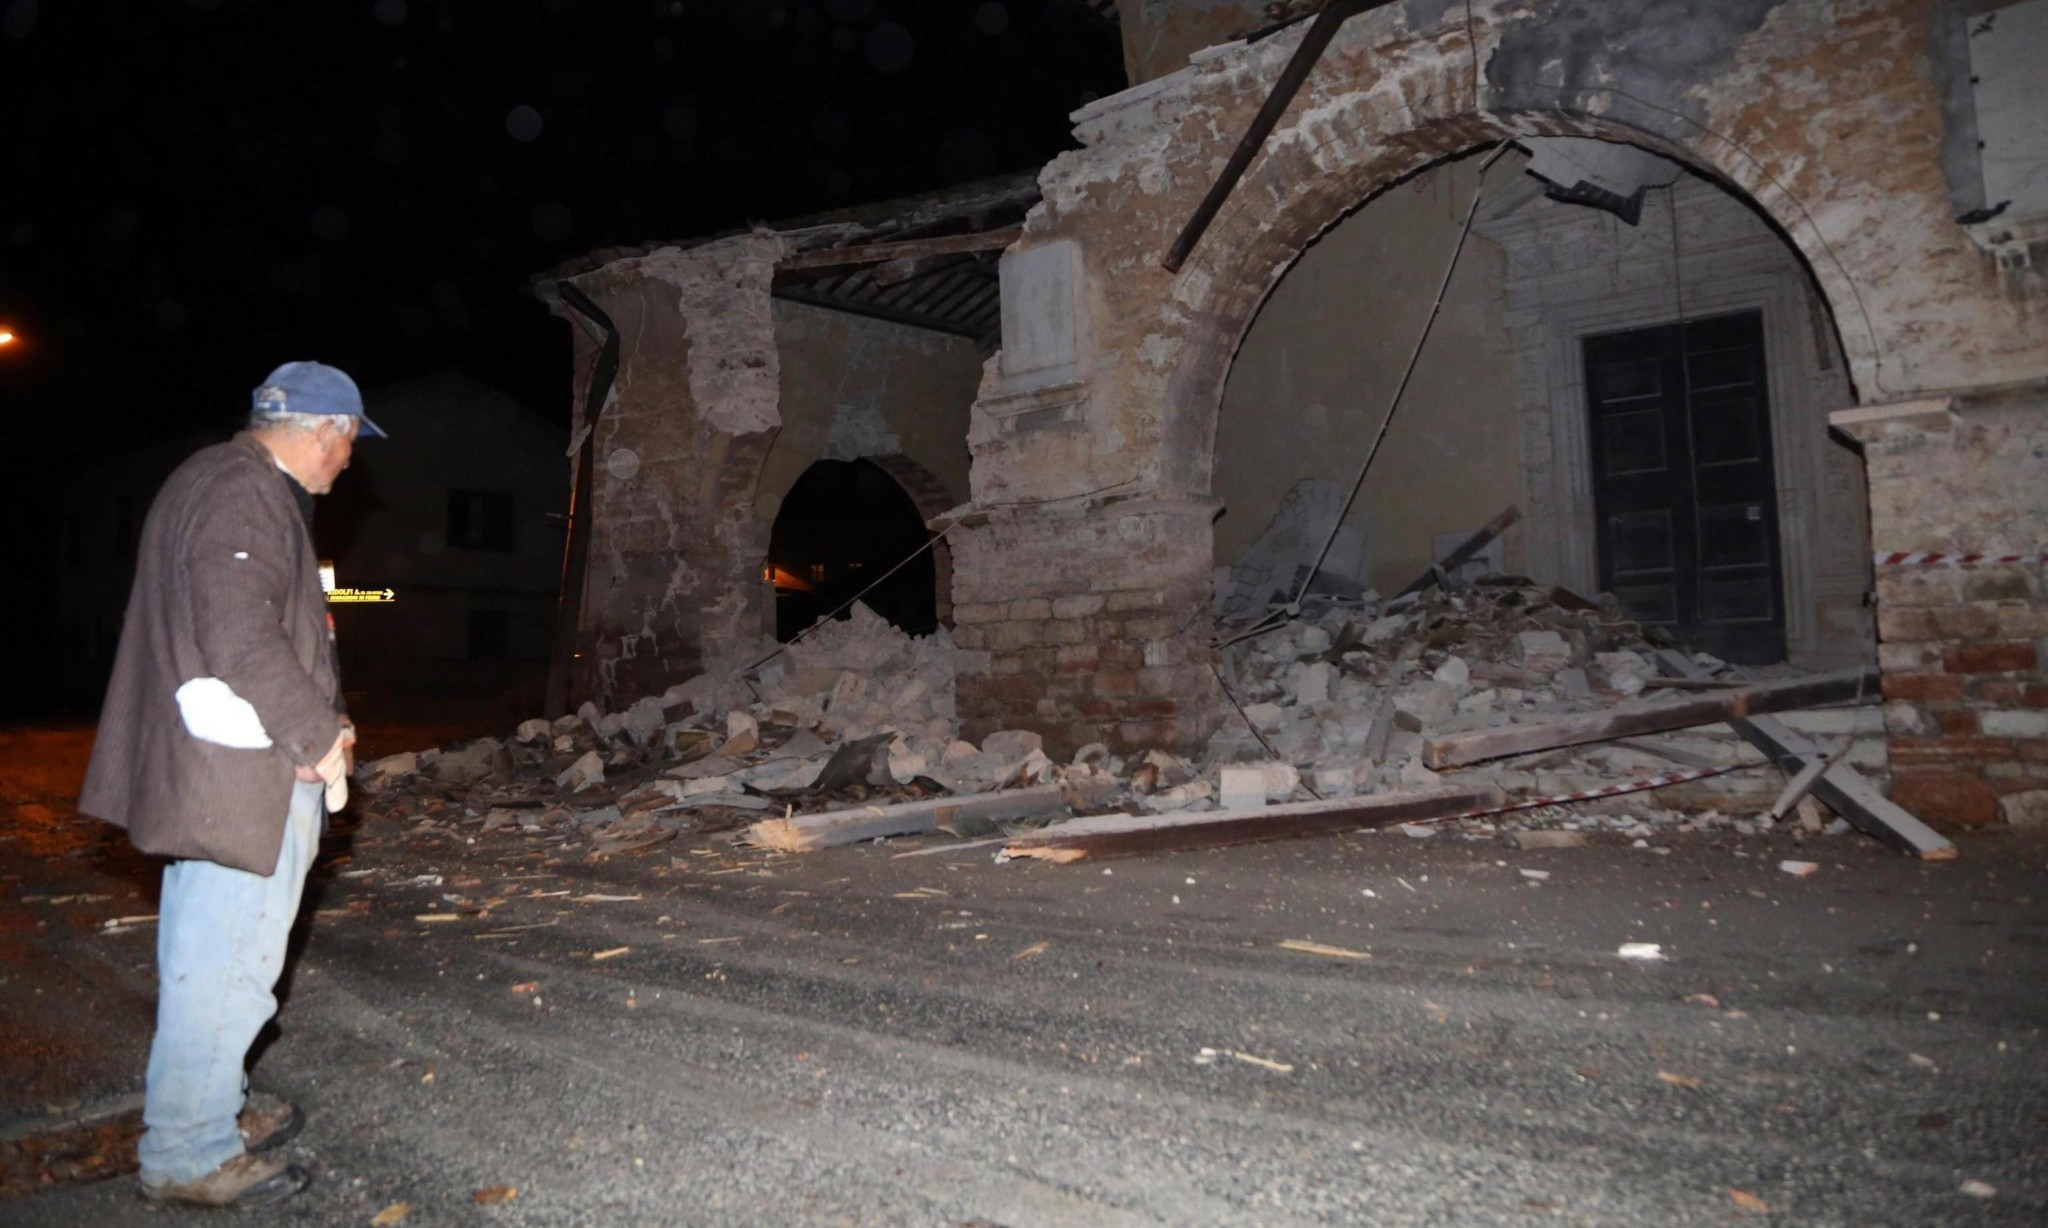 Central Italy hit by two strong earthquakes, two hours apart